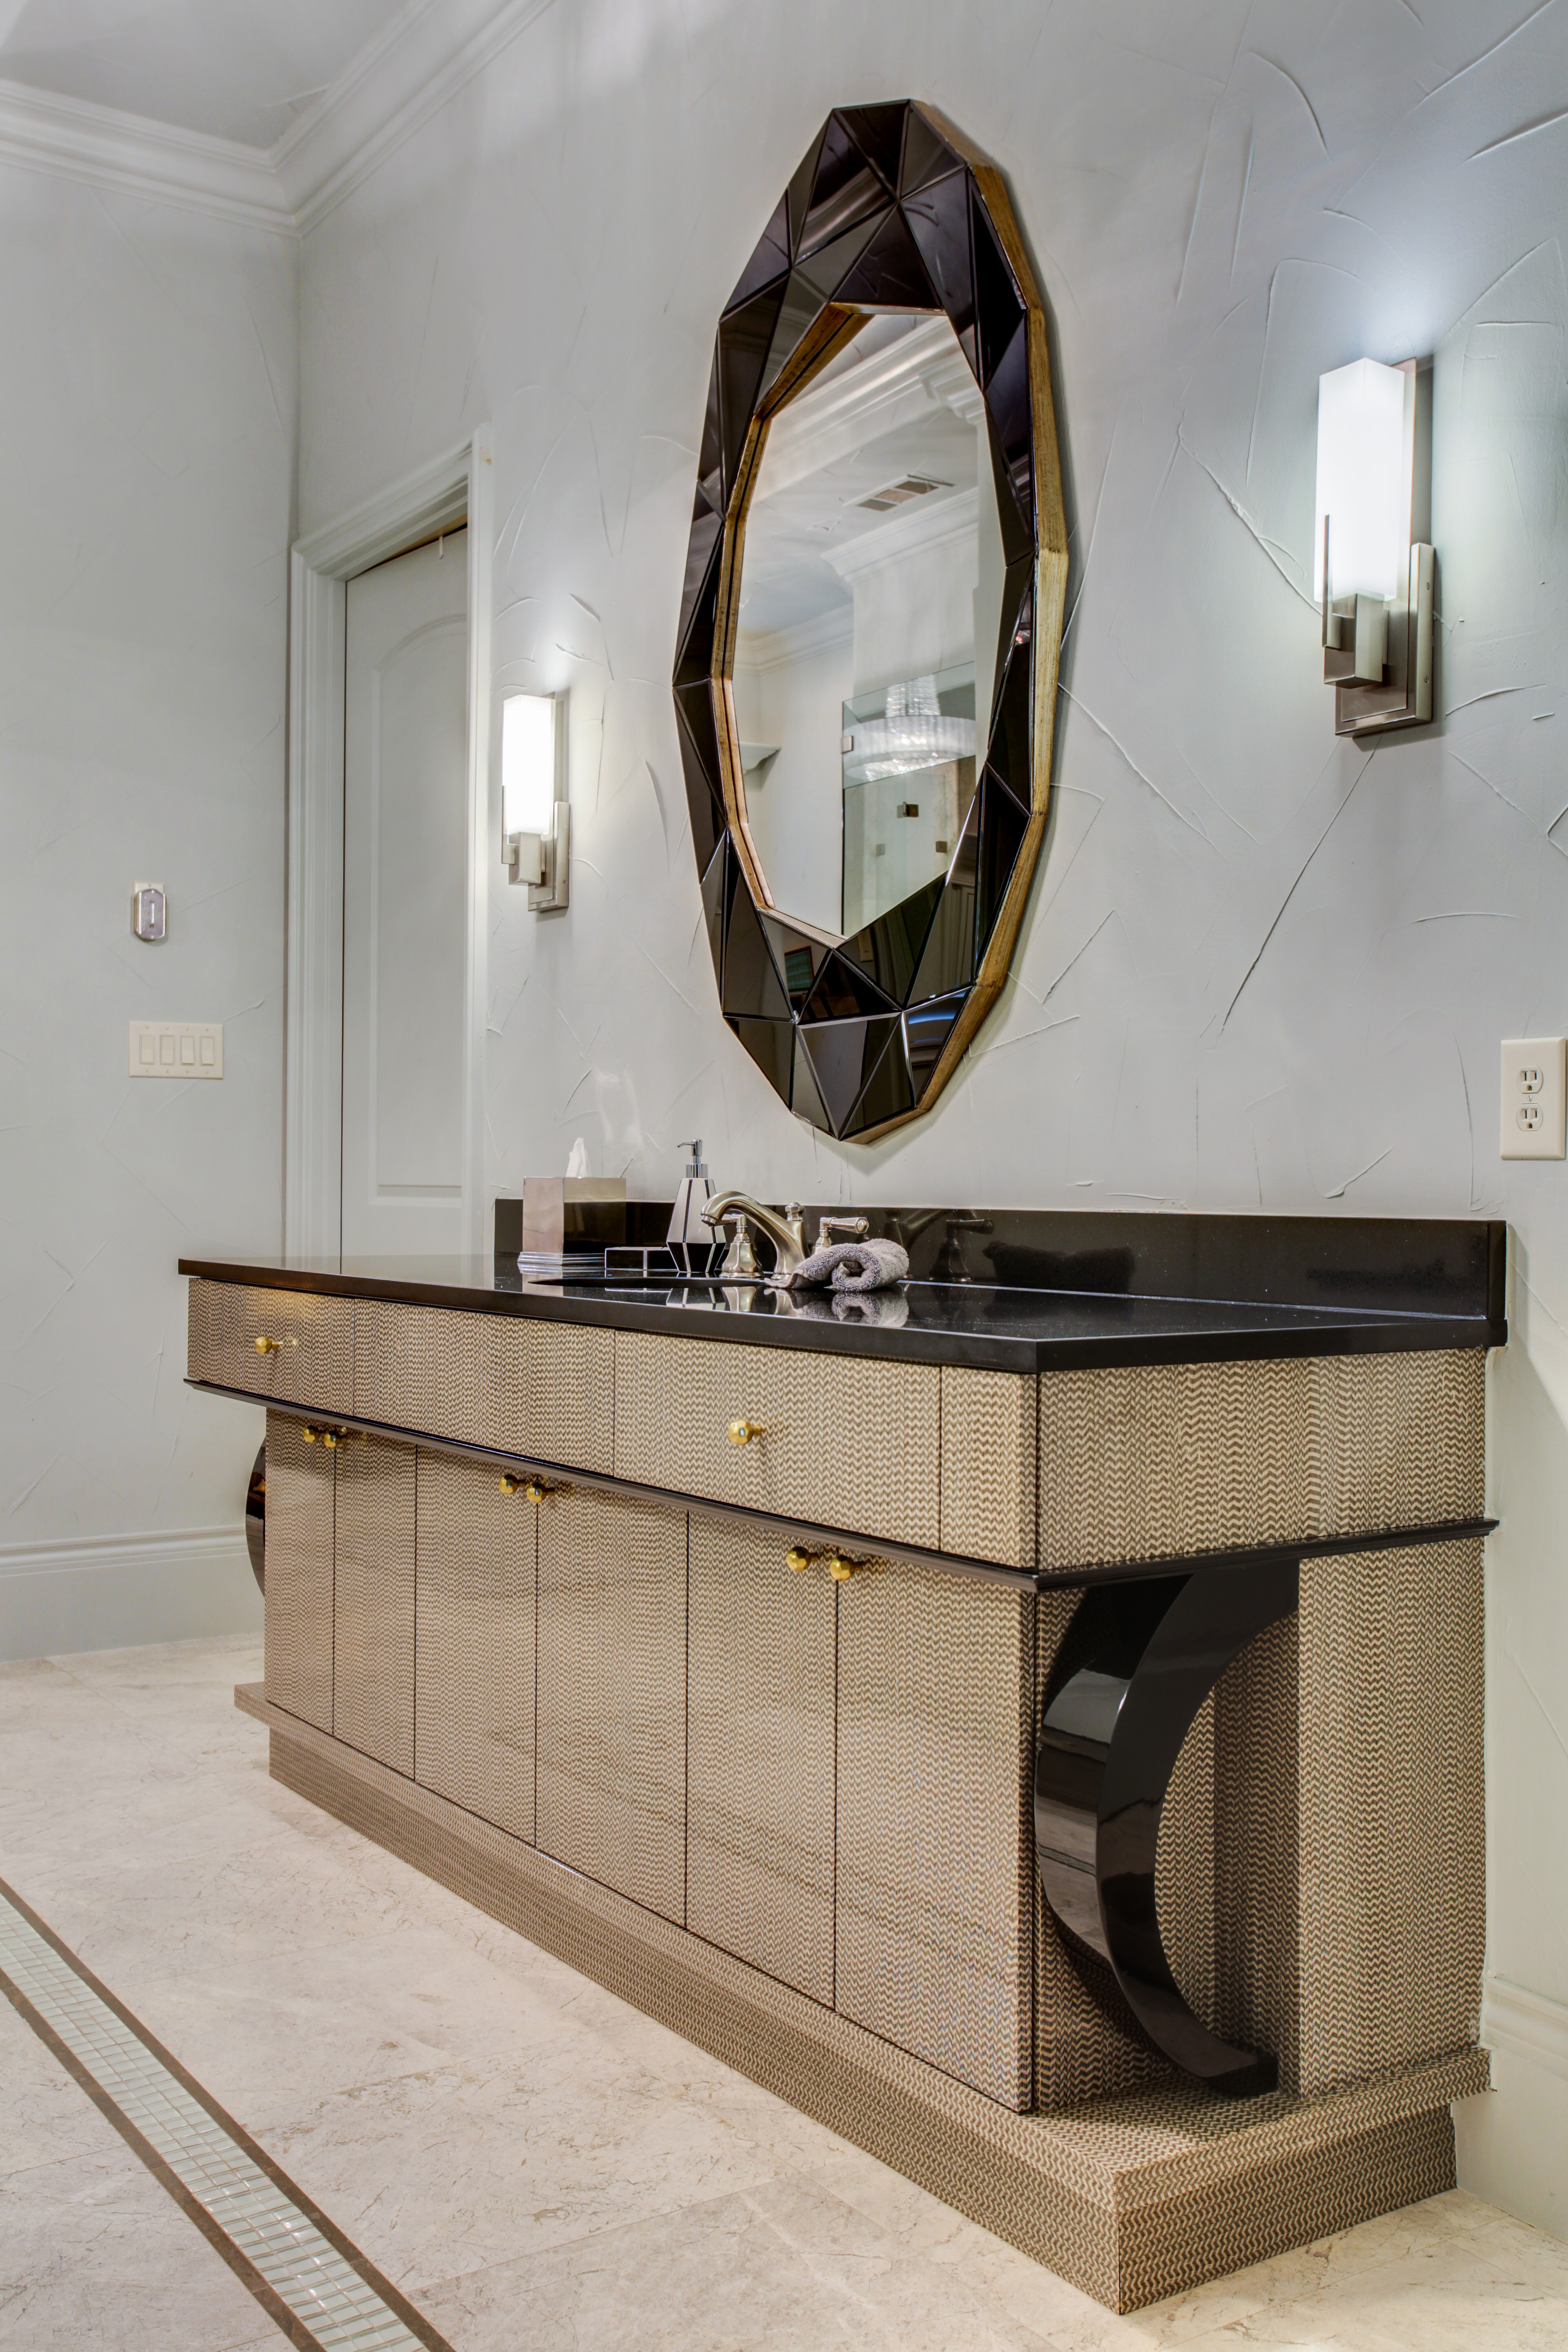 bath cabinet art deco style high gloss buy cabinets online rh cabinetcollection com art deco style bathroom vanity art deco style bathroom mirror cabinet